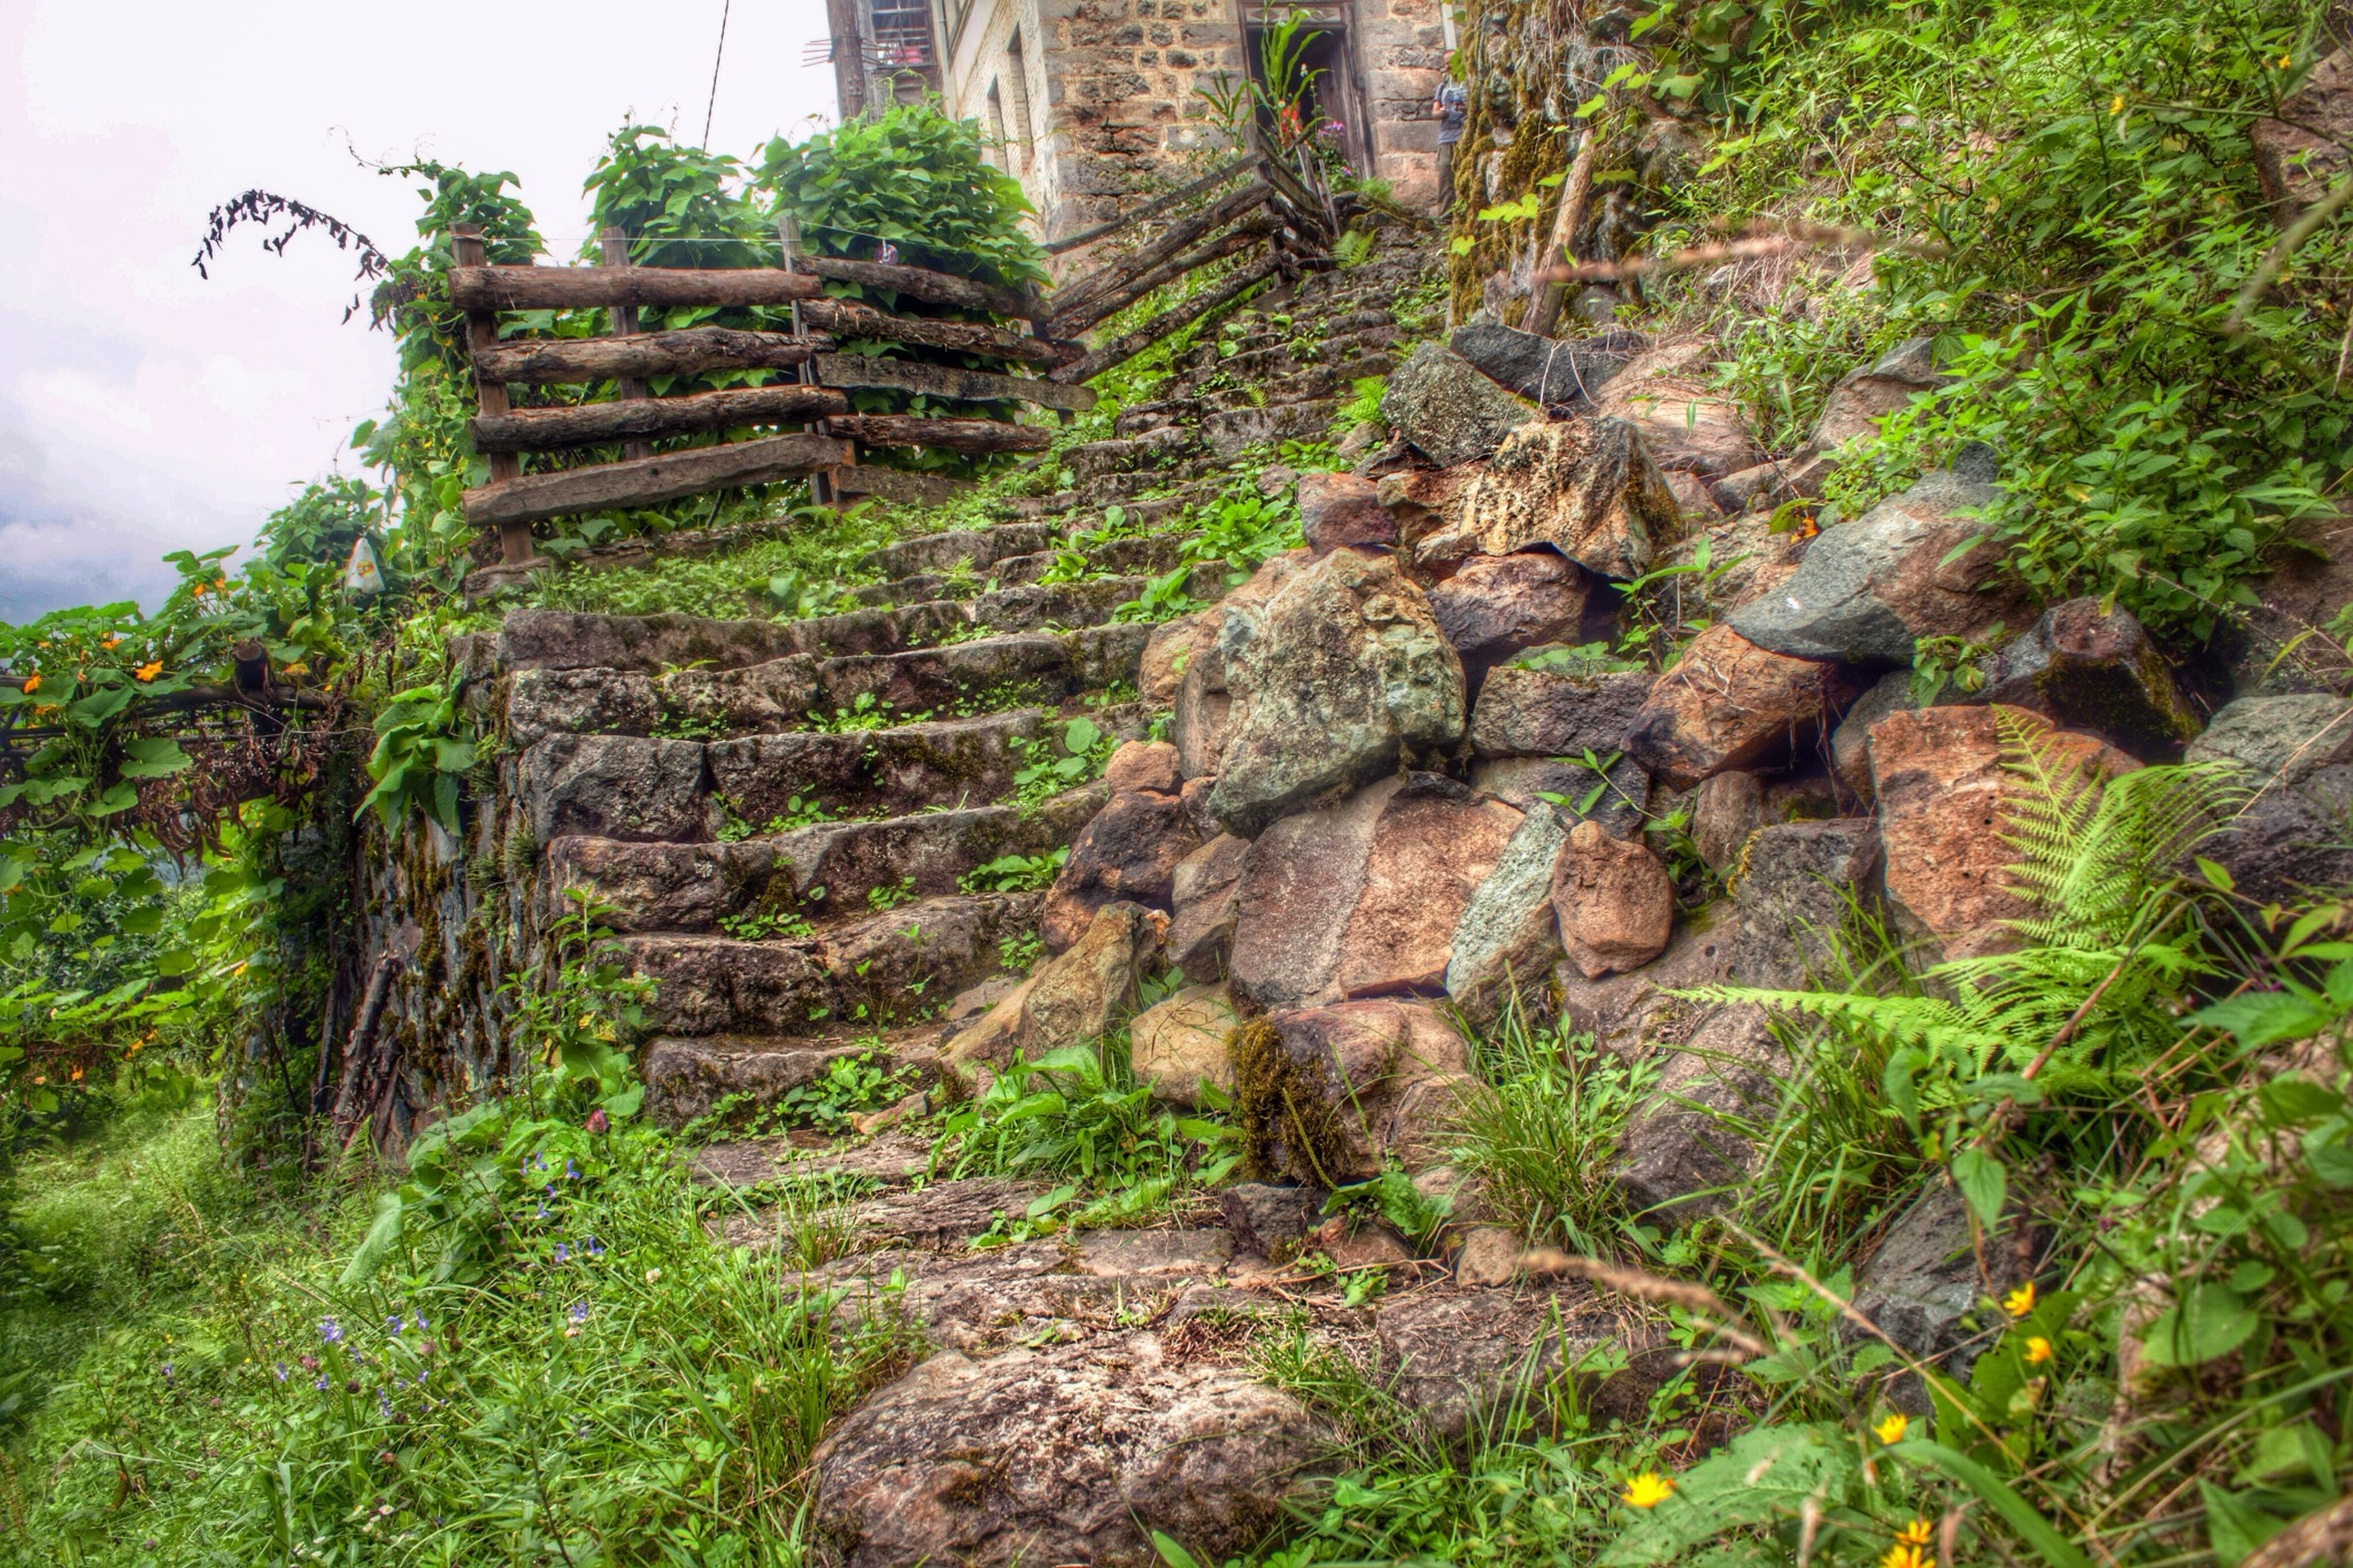 built structure, architecture, grass, plant, building exterior, old, tree, growth, sky, damaged, green color, old ruin, weathered, stone wall, abandoned, nature, tranquility, low angle view, run-down, day